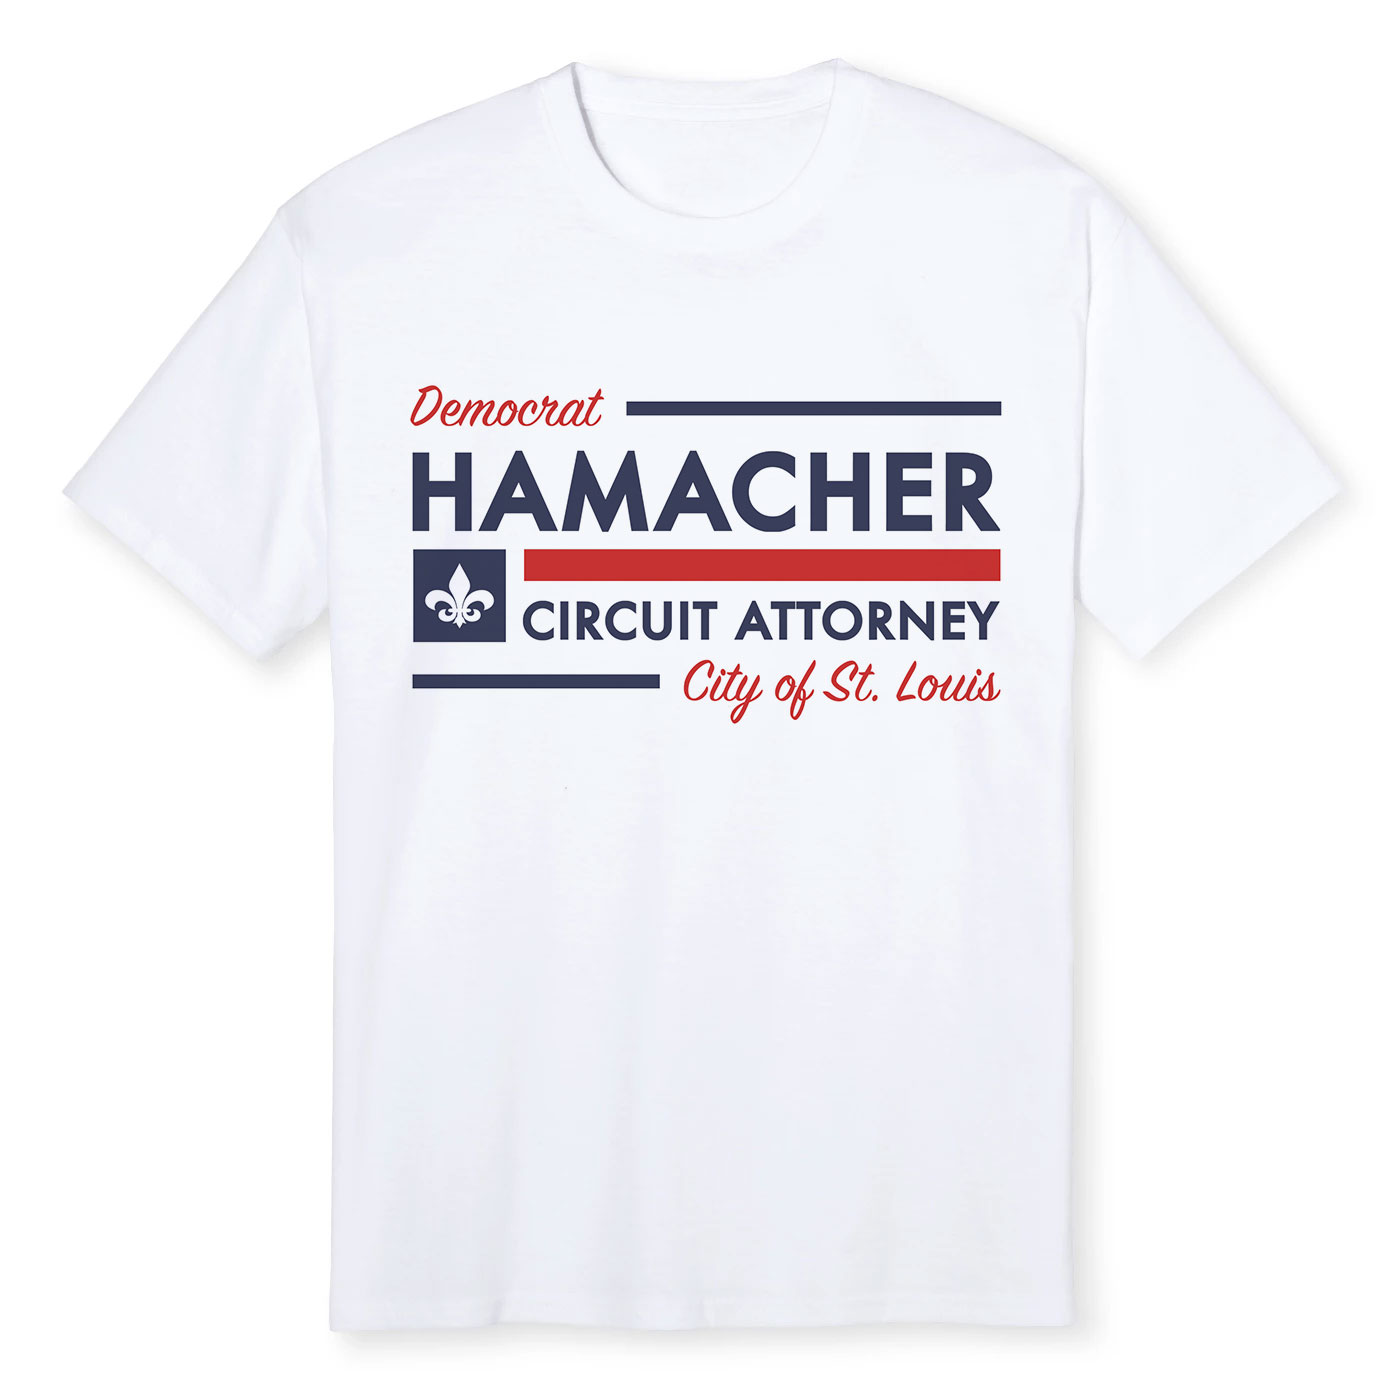 hamacher-shirt.jpg